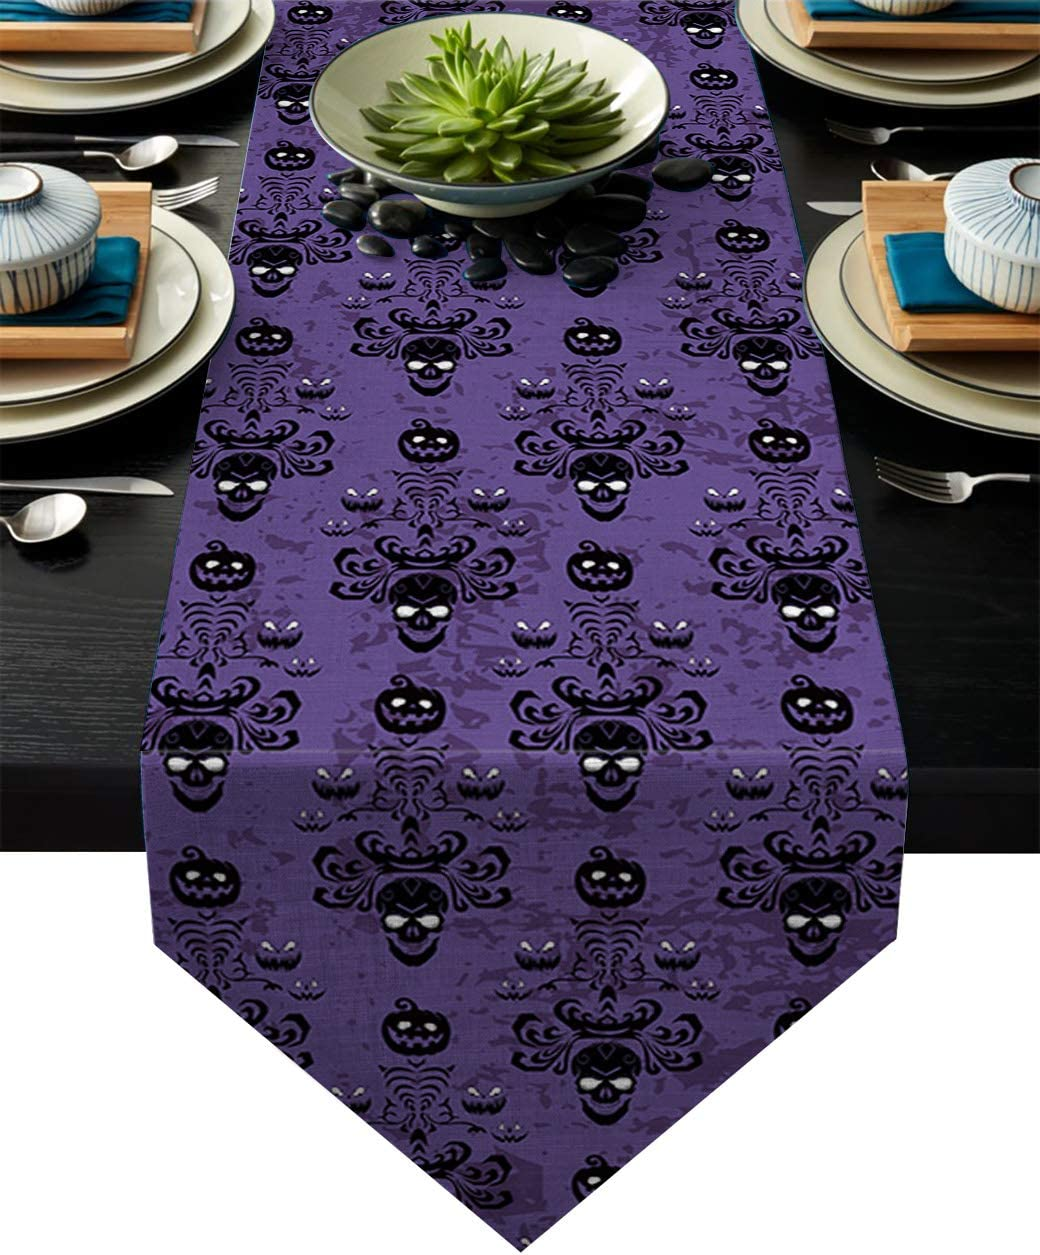 Chic D 90inch Table Runner, Halloween Haunted Cotton Linen Table Setting Decor for Wedding Party Holiday Dinner Home, Machine Washable.